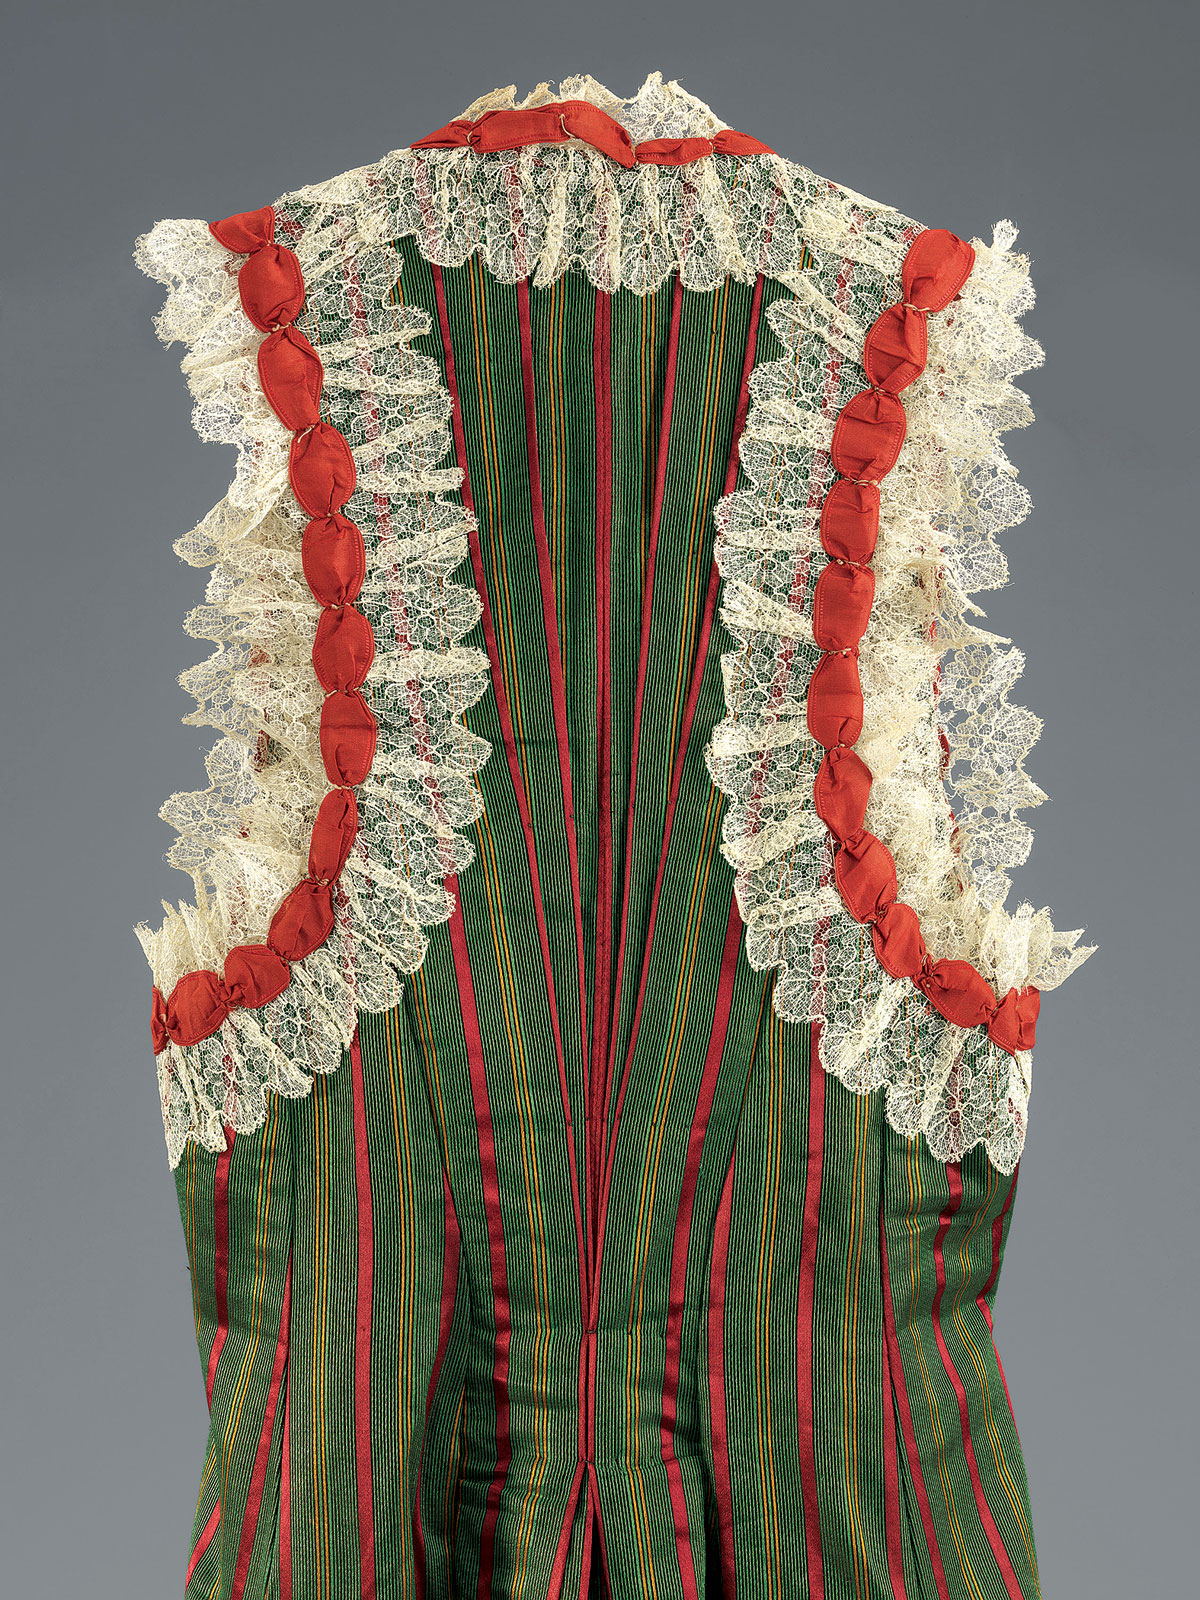 DETAIL OF A WOMAN'S ENSEMBLE of silk satin with cotton lace and silk ribbons, blouse with silk-thread embroidery, Tlemcen, Algeria, early twentieth century.  Photograph by Mauro Magliani, courtesy of The Israel Museum, Jerusalem.